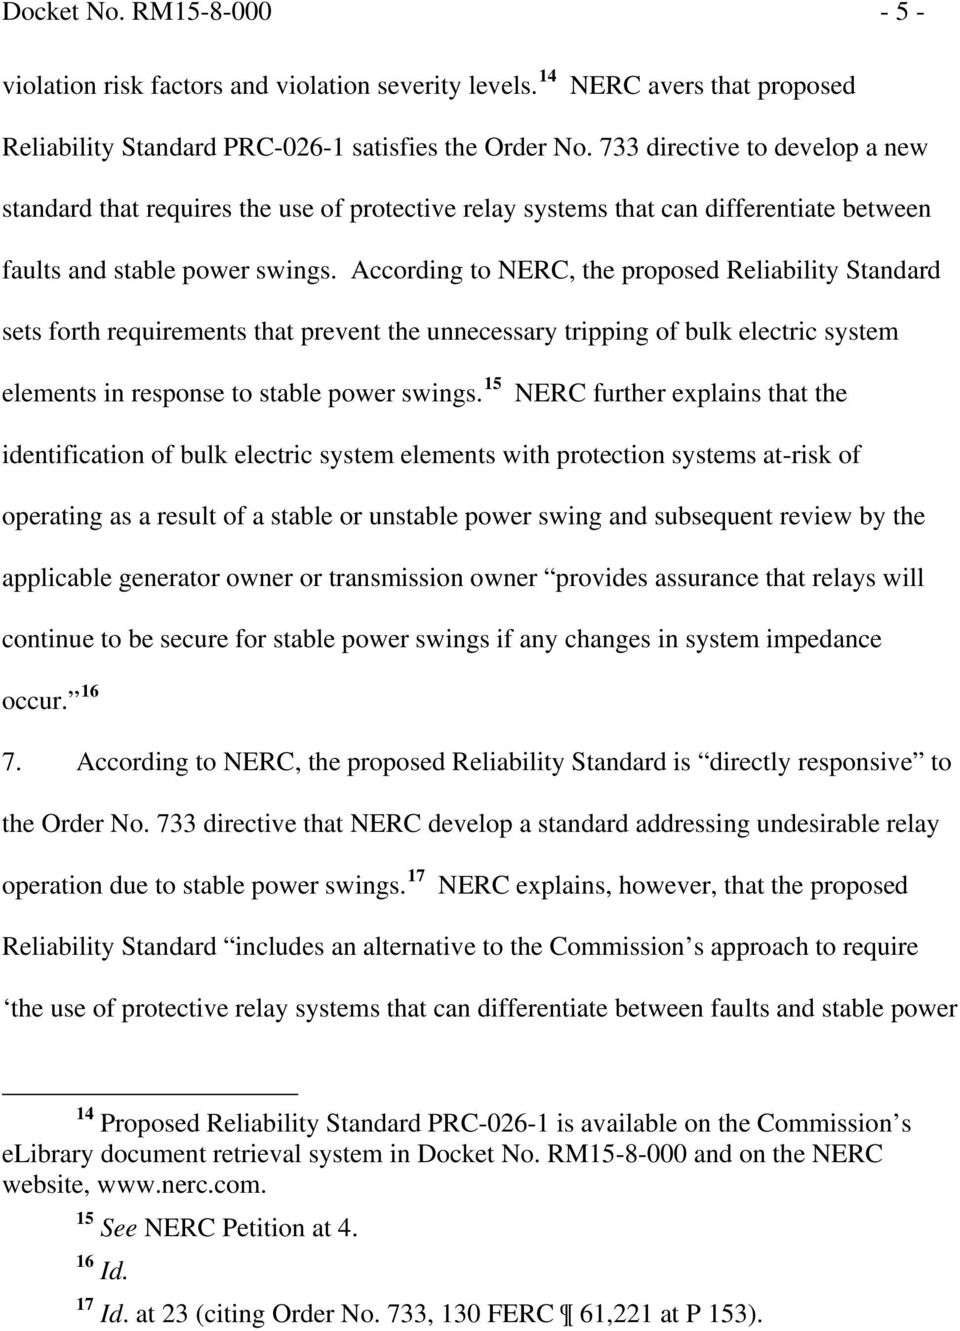 According to NERC, the proposed Reliability Standard sets forth requirements that prevent the unnecessary tripping of bulk electric system elements in response to stable power swings.